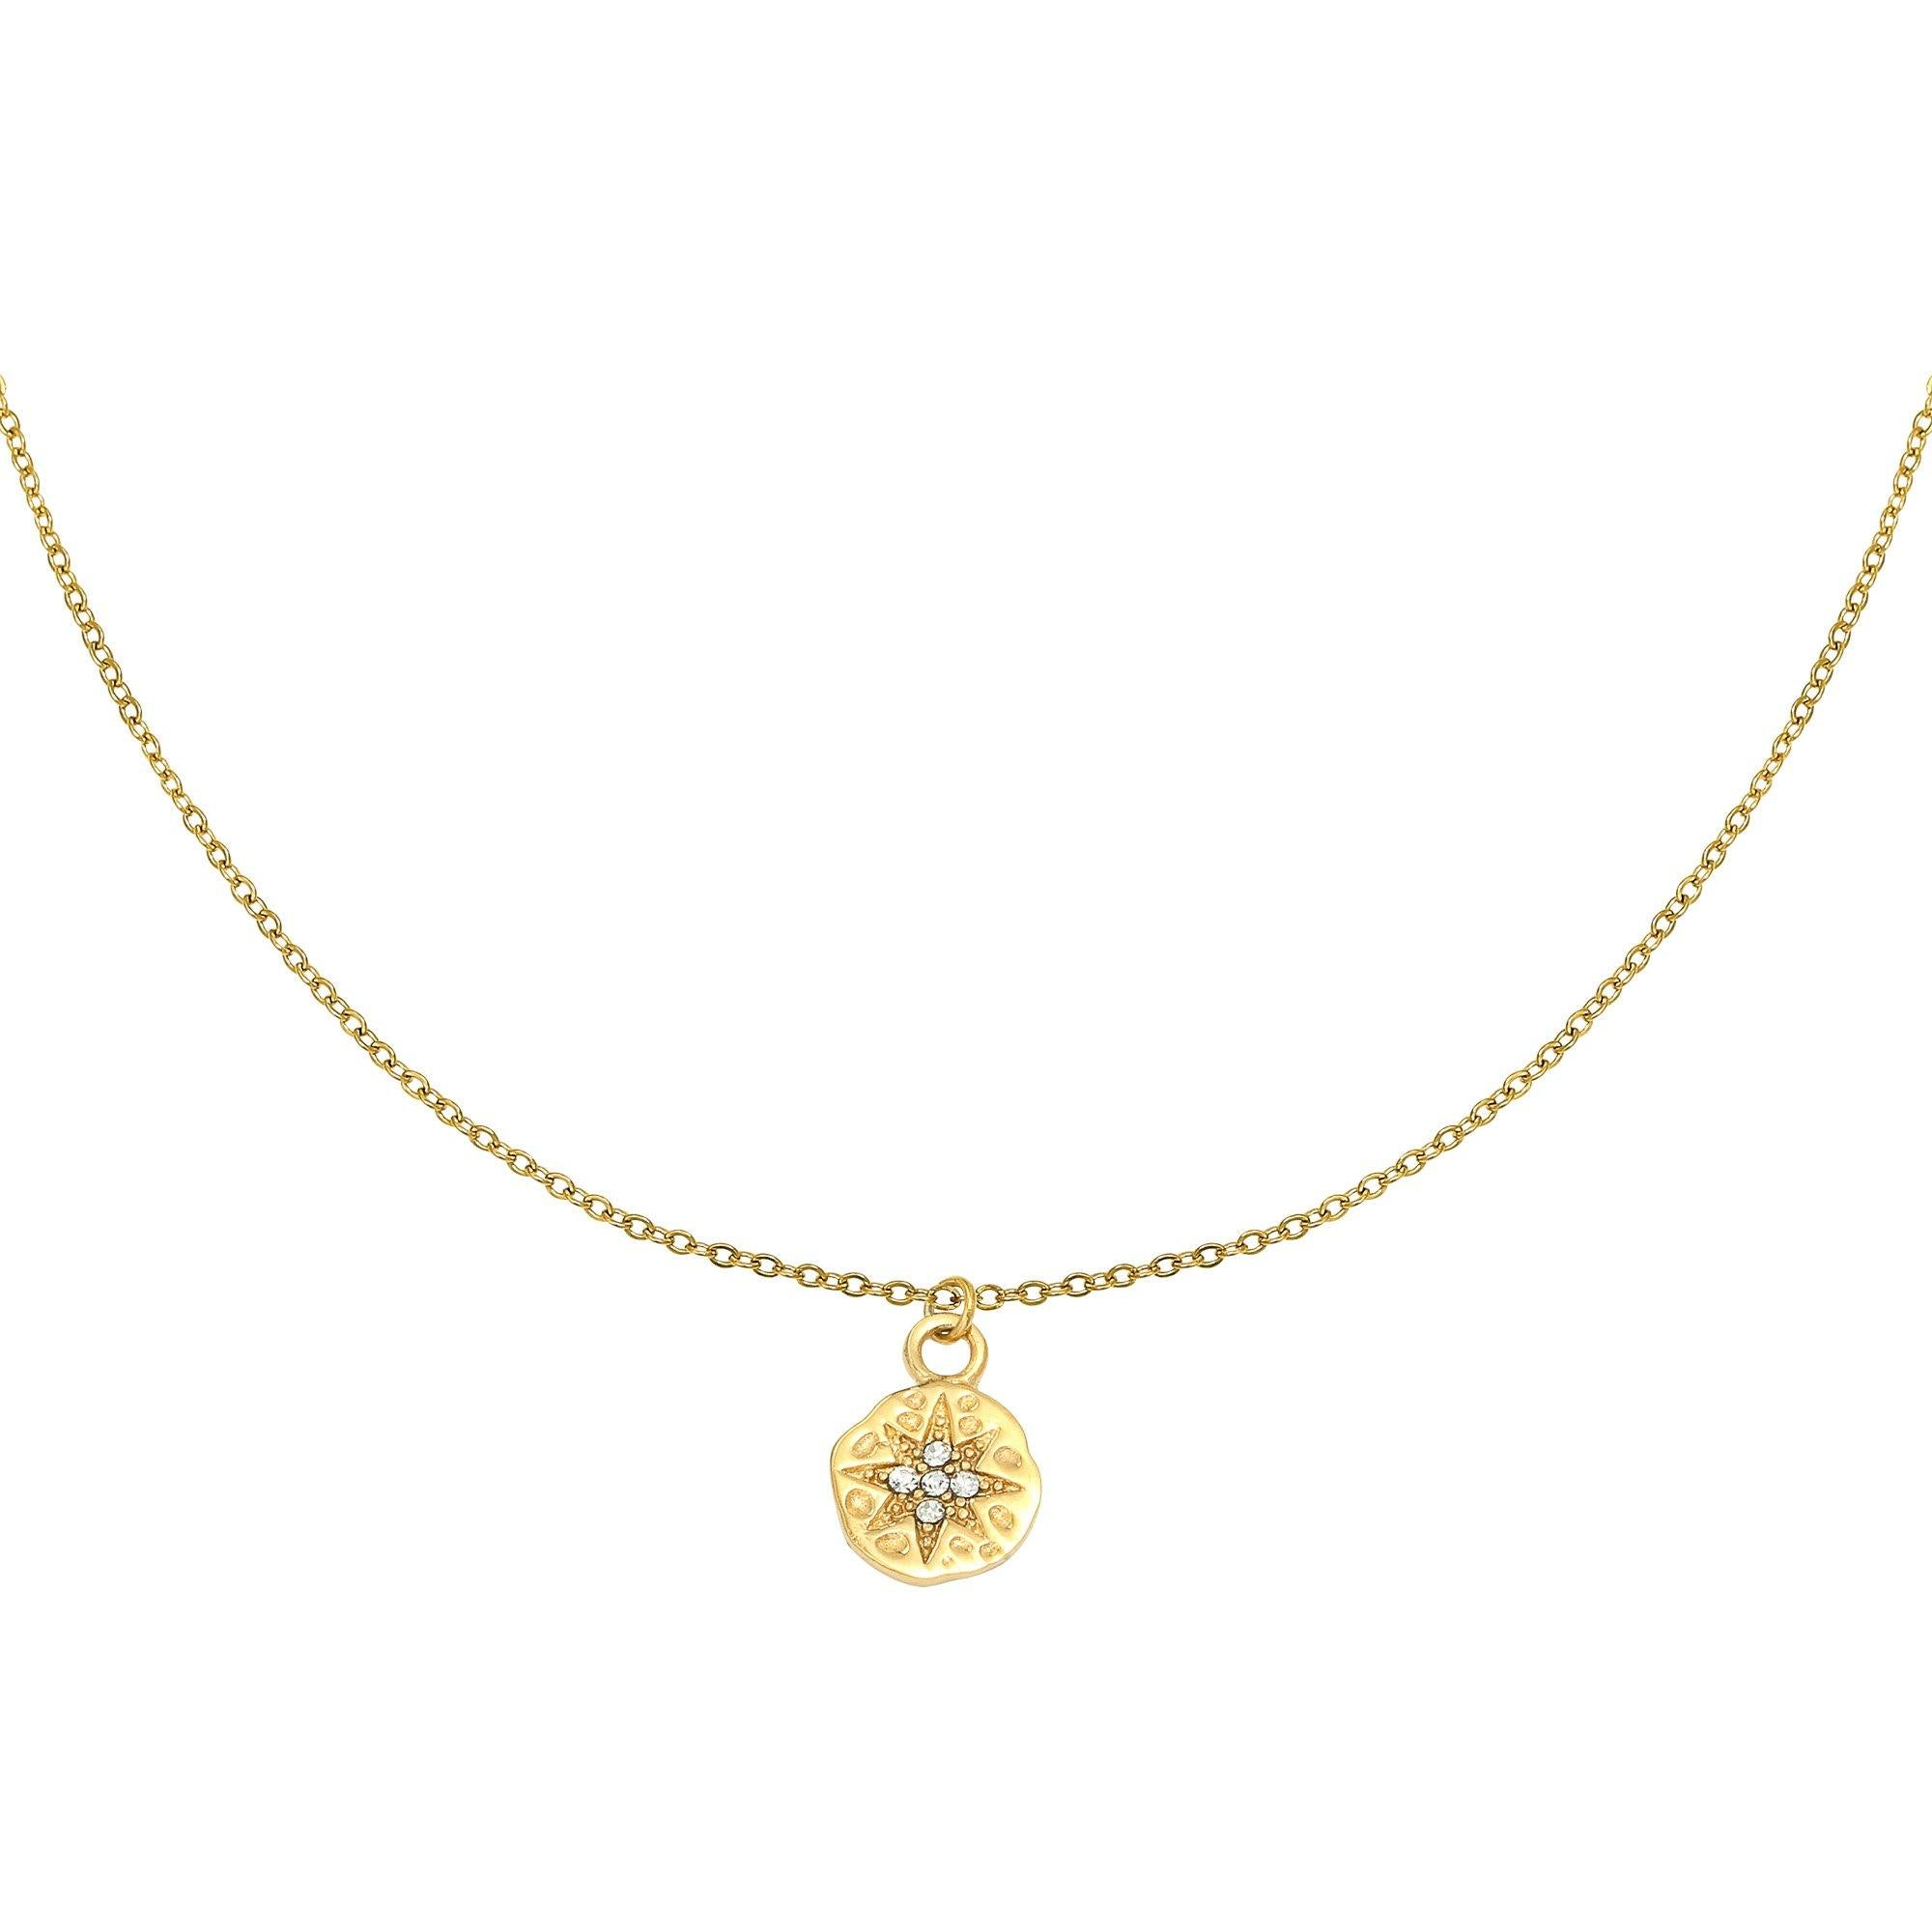 STELLA TWINKLE NECKLACE - ZARIA.SE